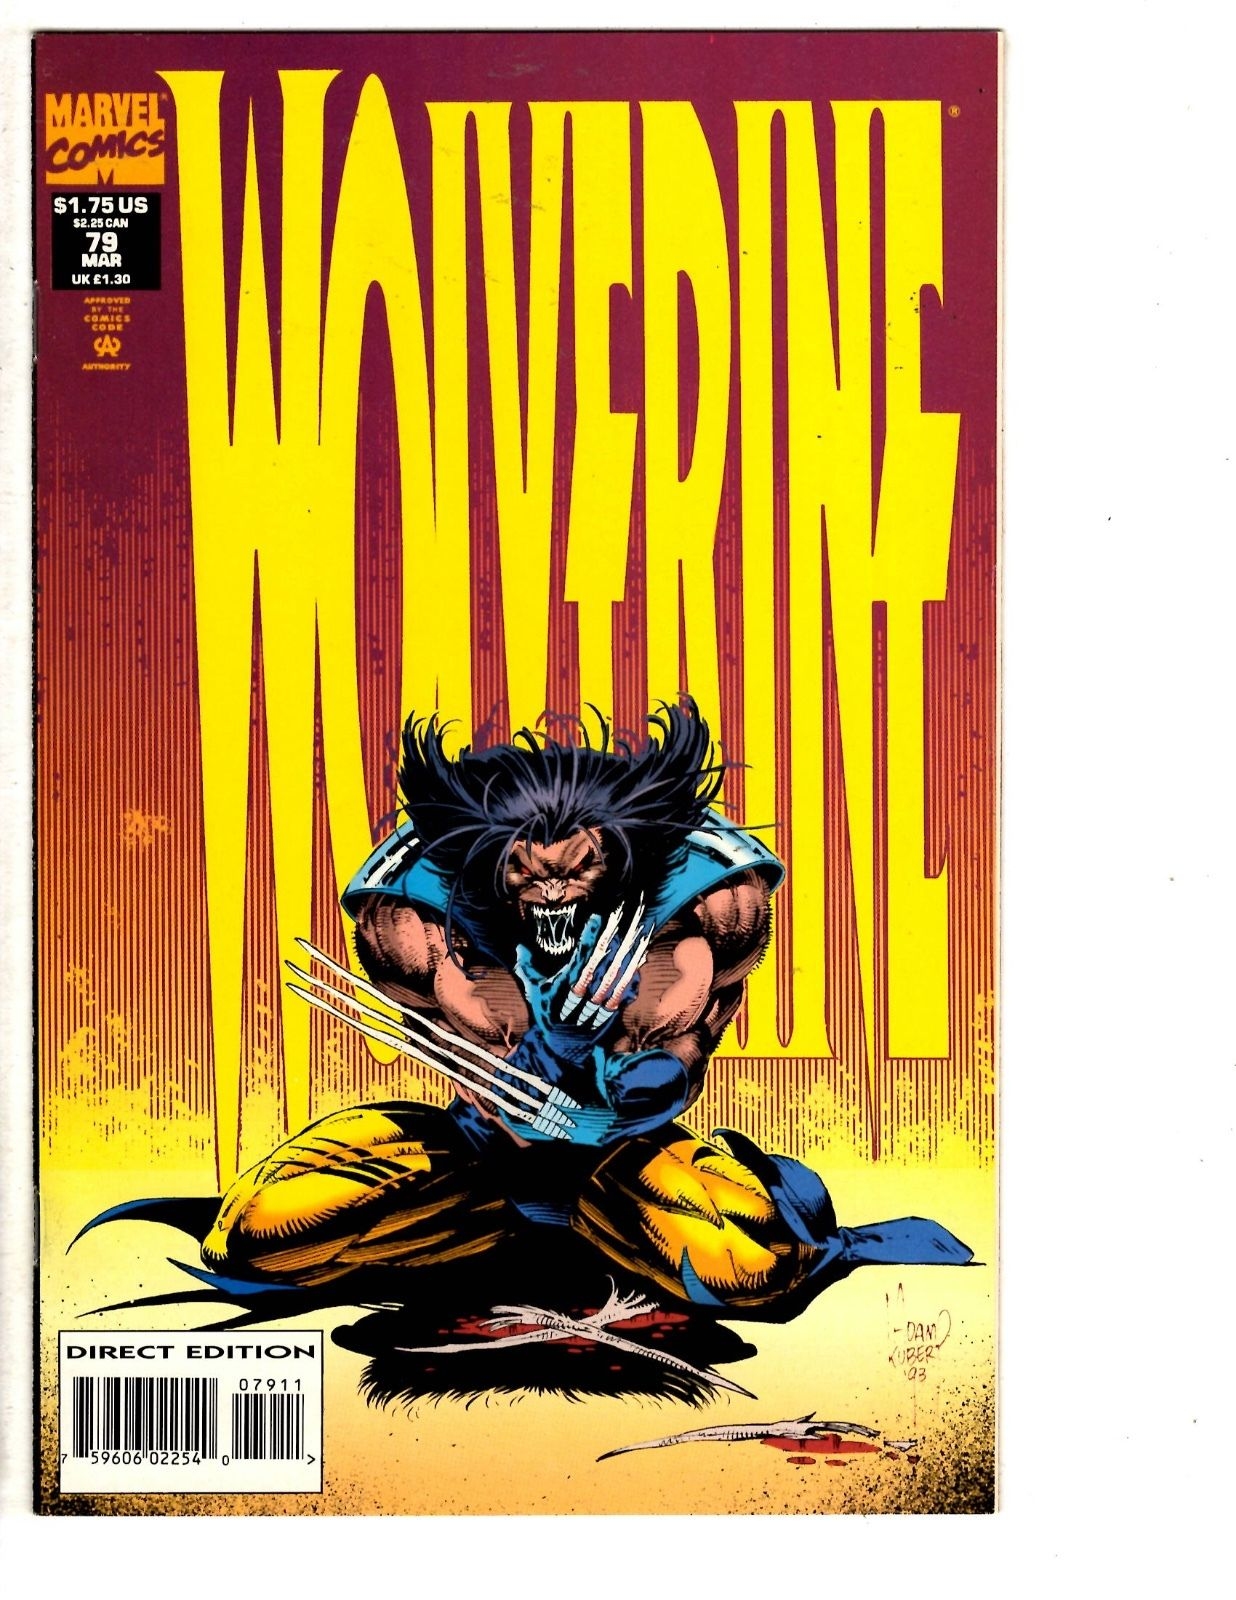 Comics 5 Wolverine Marvel Comic Books # 74 76 77 78 79 X-men Jubilee Sentinel Ms15